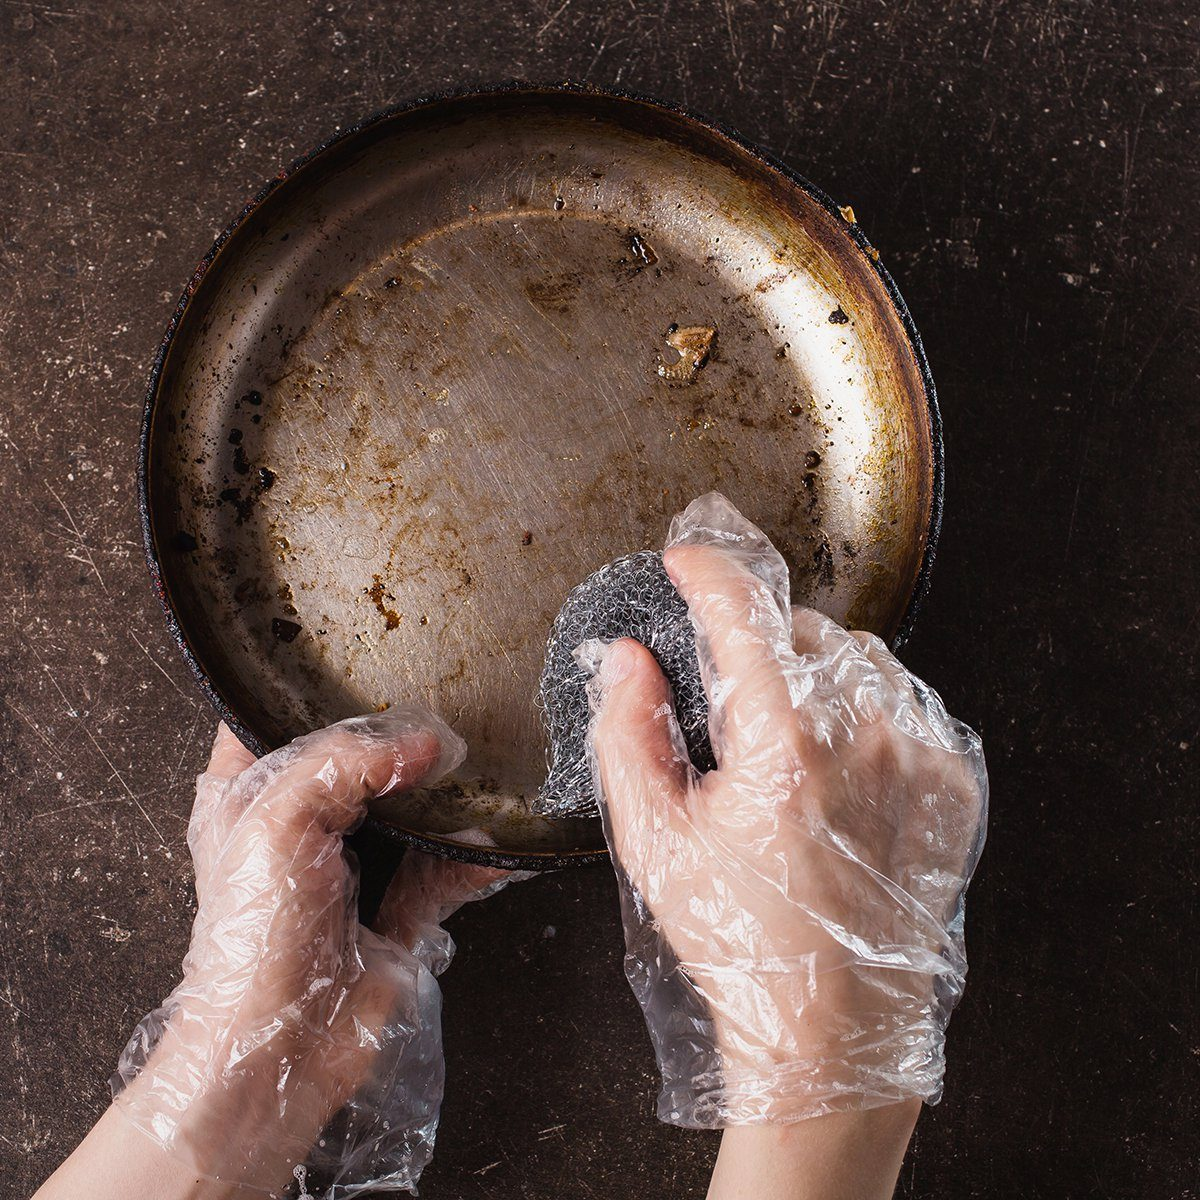 Wash the frying pan on a dark marble background.